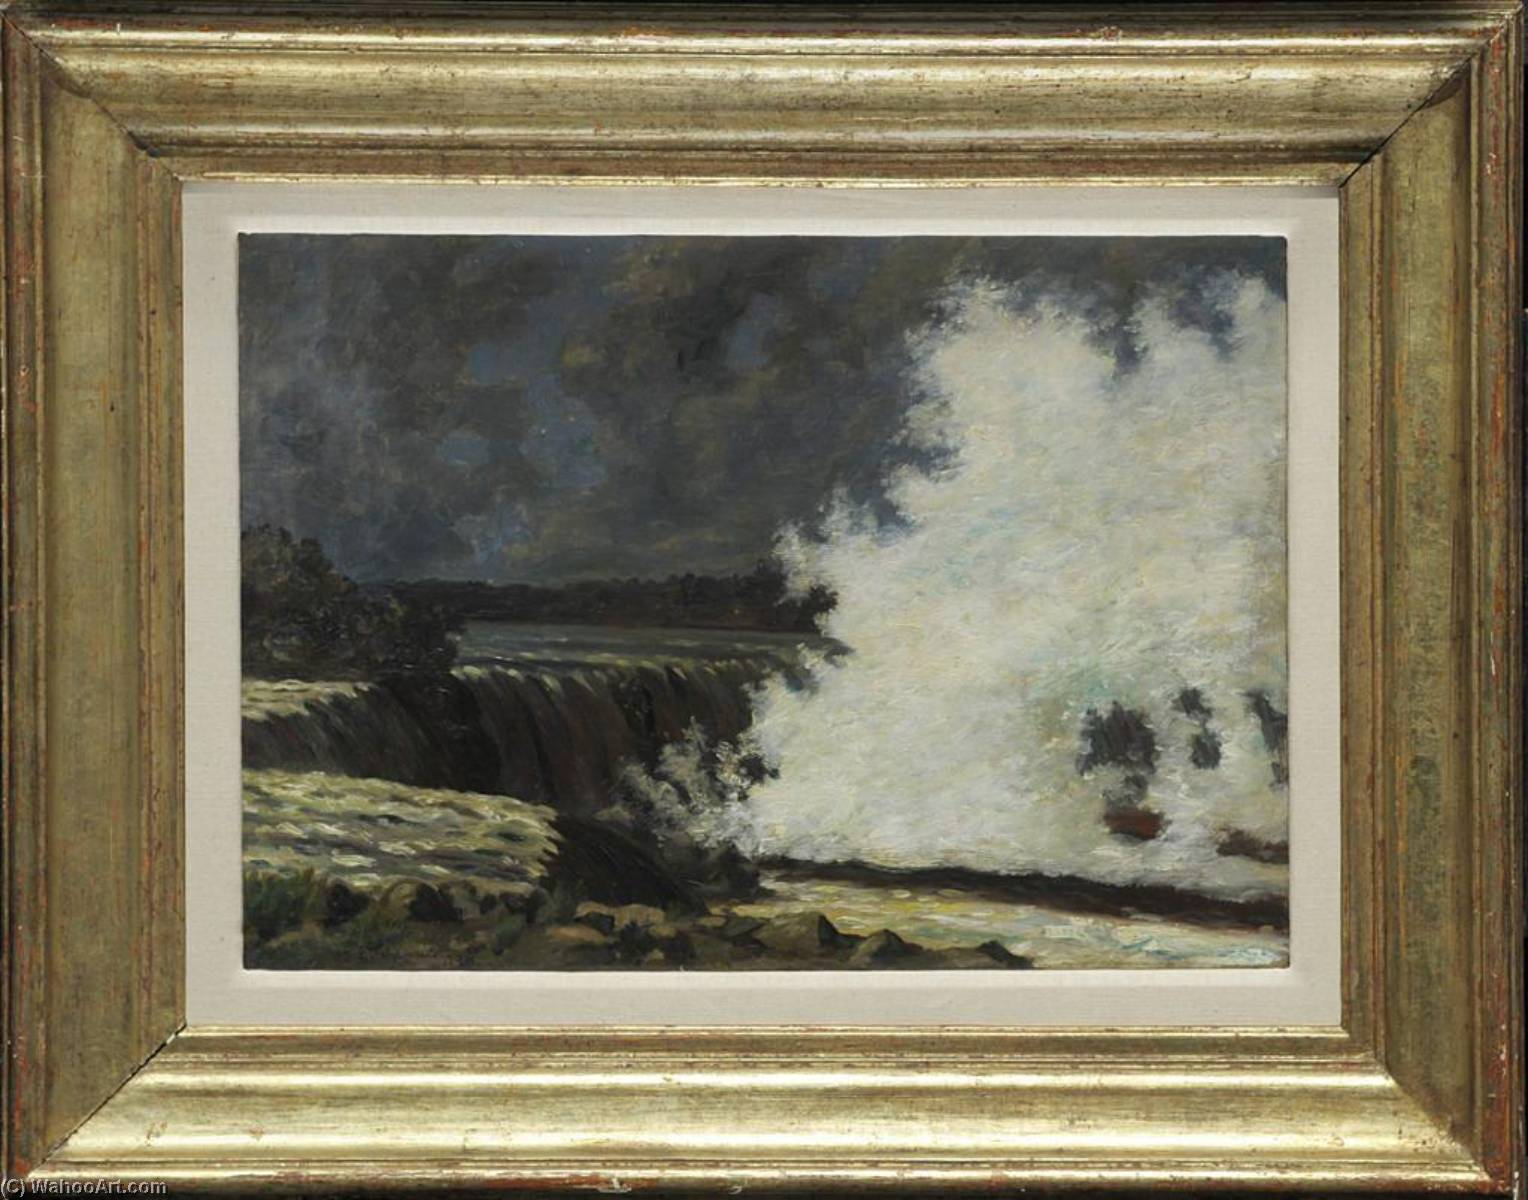 Waterfalls, Oil On Canvas by Louis Michel Eilshemius (1864-1941, United States)